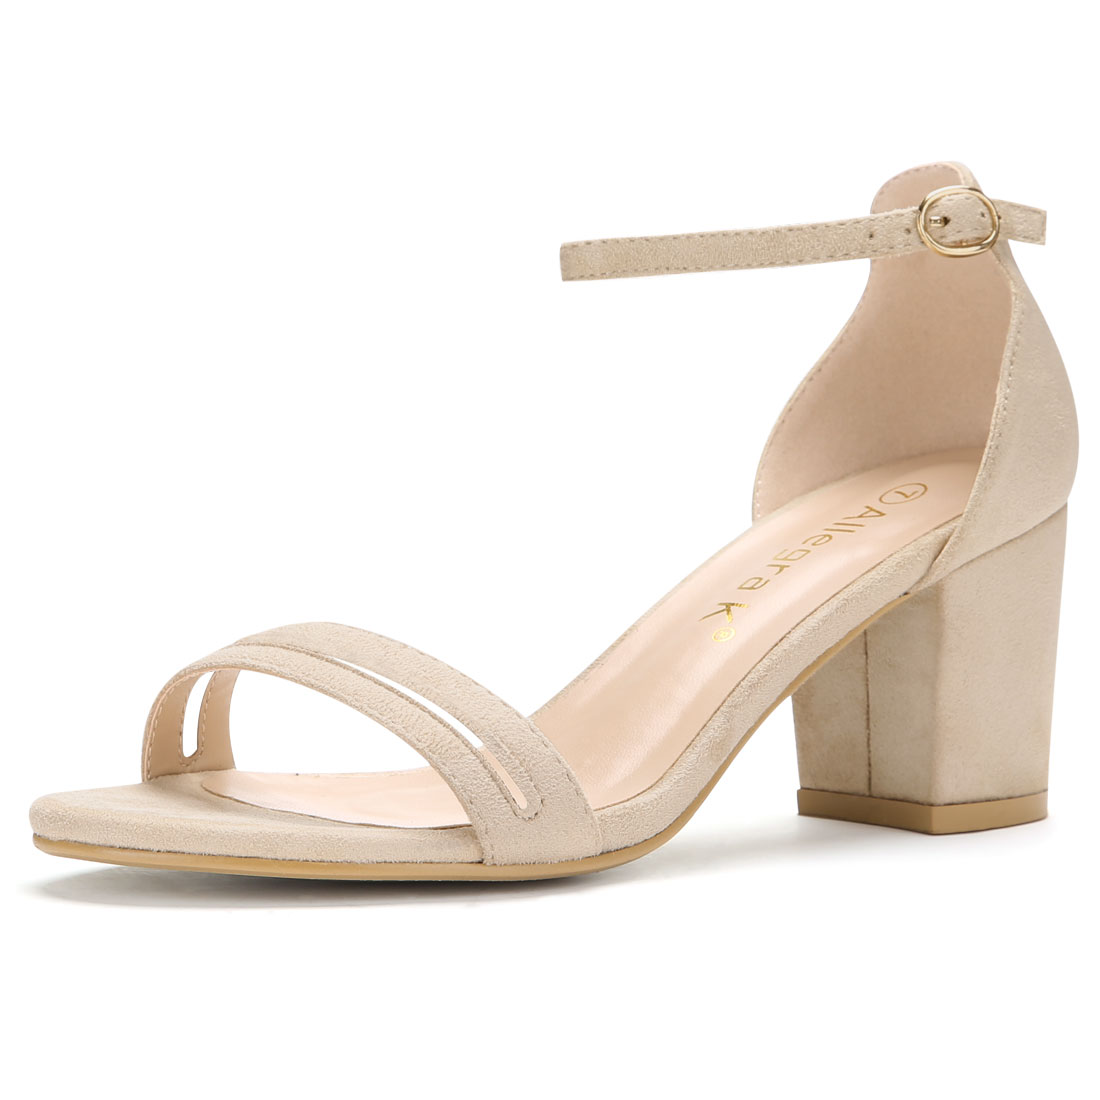 Women Open Toe Mid Chunky Heel Ankle Strap Sandals Beige US 9